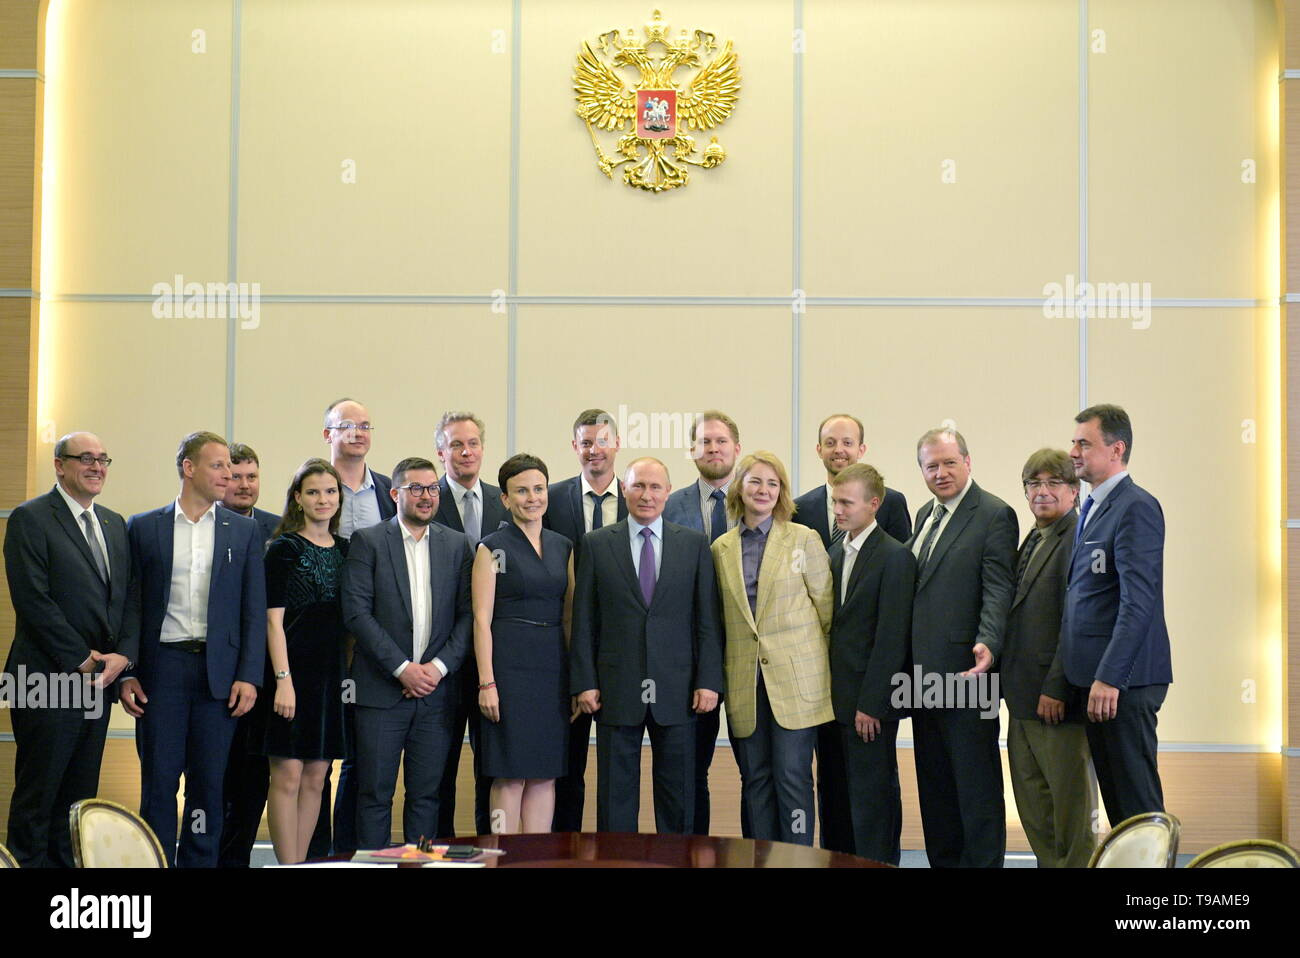 Moscow, Russia. 17th May, 2019. SOCHI, RUSSIA - MAY 17, 2019: Russia's President Vladimir Putin (C) poses for a agroup photo during a meeting with the winners of 'megagrants' for scientific research. Alexei Druzhinin/Russian Presidential Press and Information Office/TASS Credit: ITAR-TASS News Agency/Alamy Live News - Stock Image